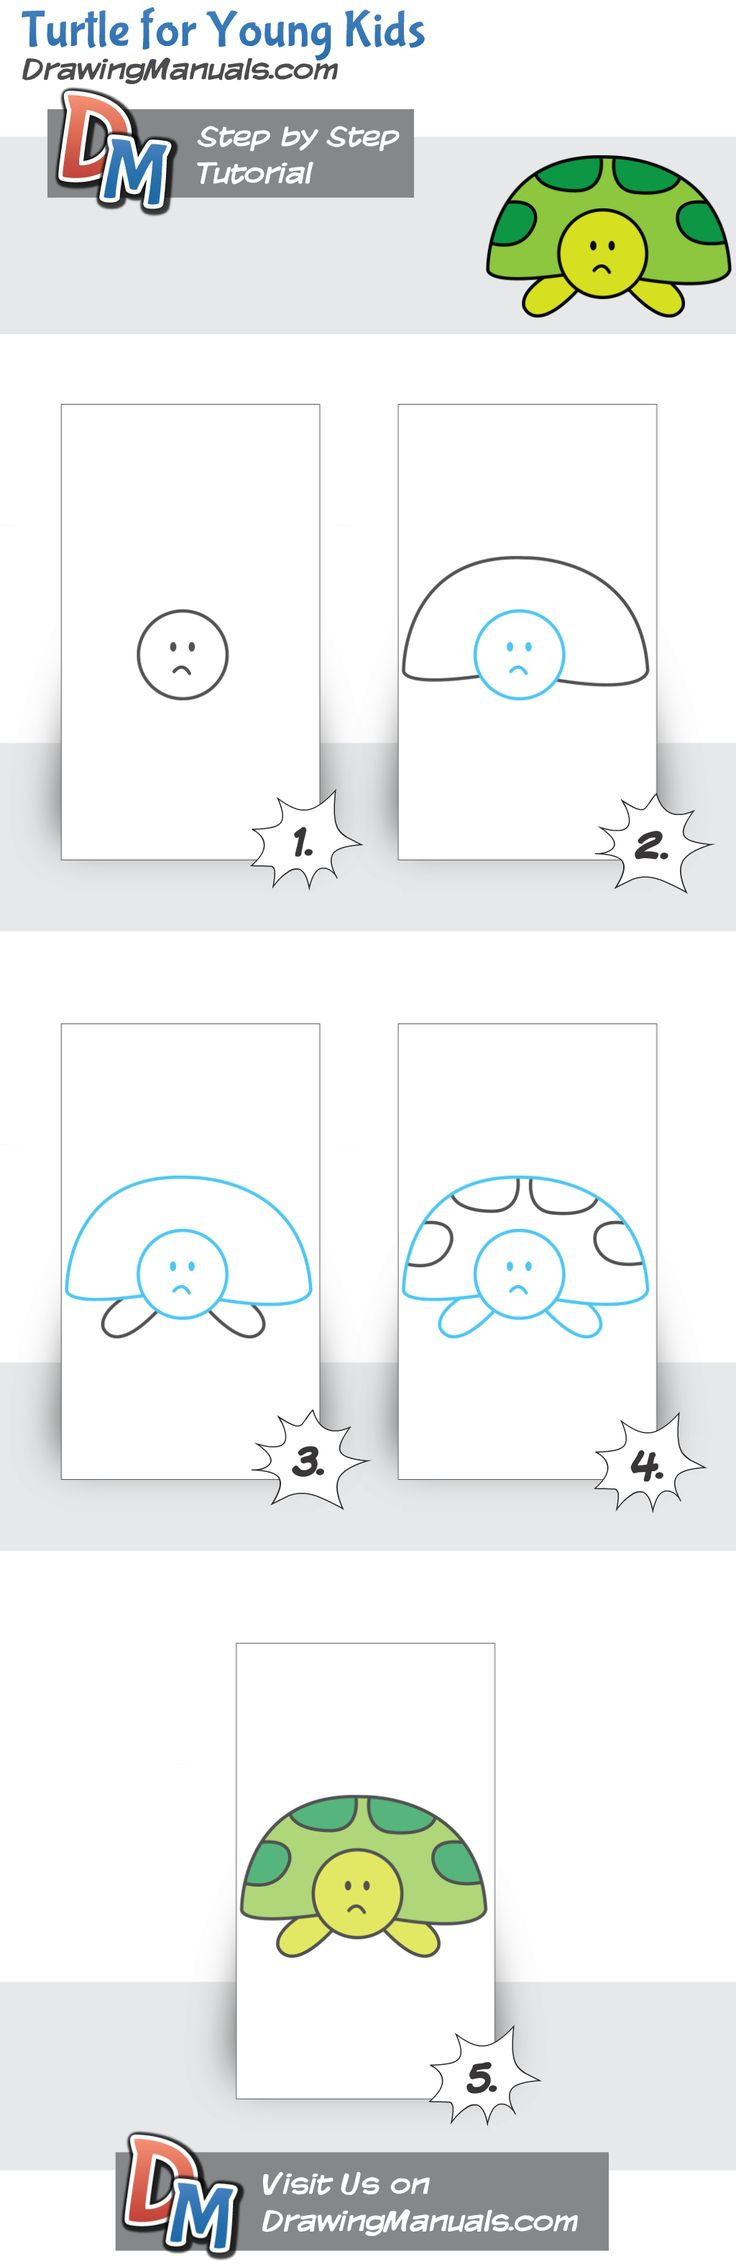 Turtle for Young Kids http://drawingmanuals.com/manual/turtle-for-young-kids/